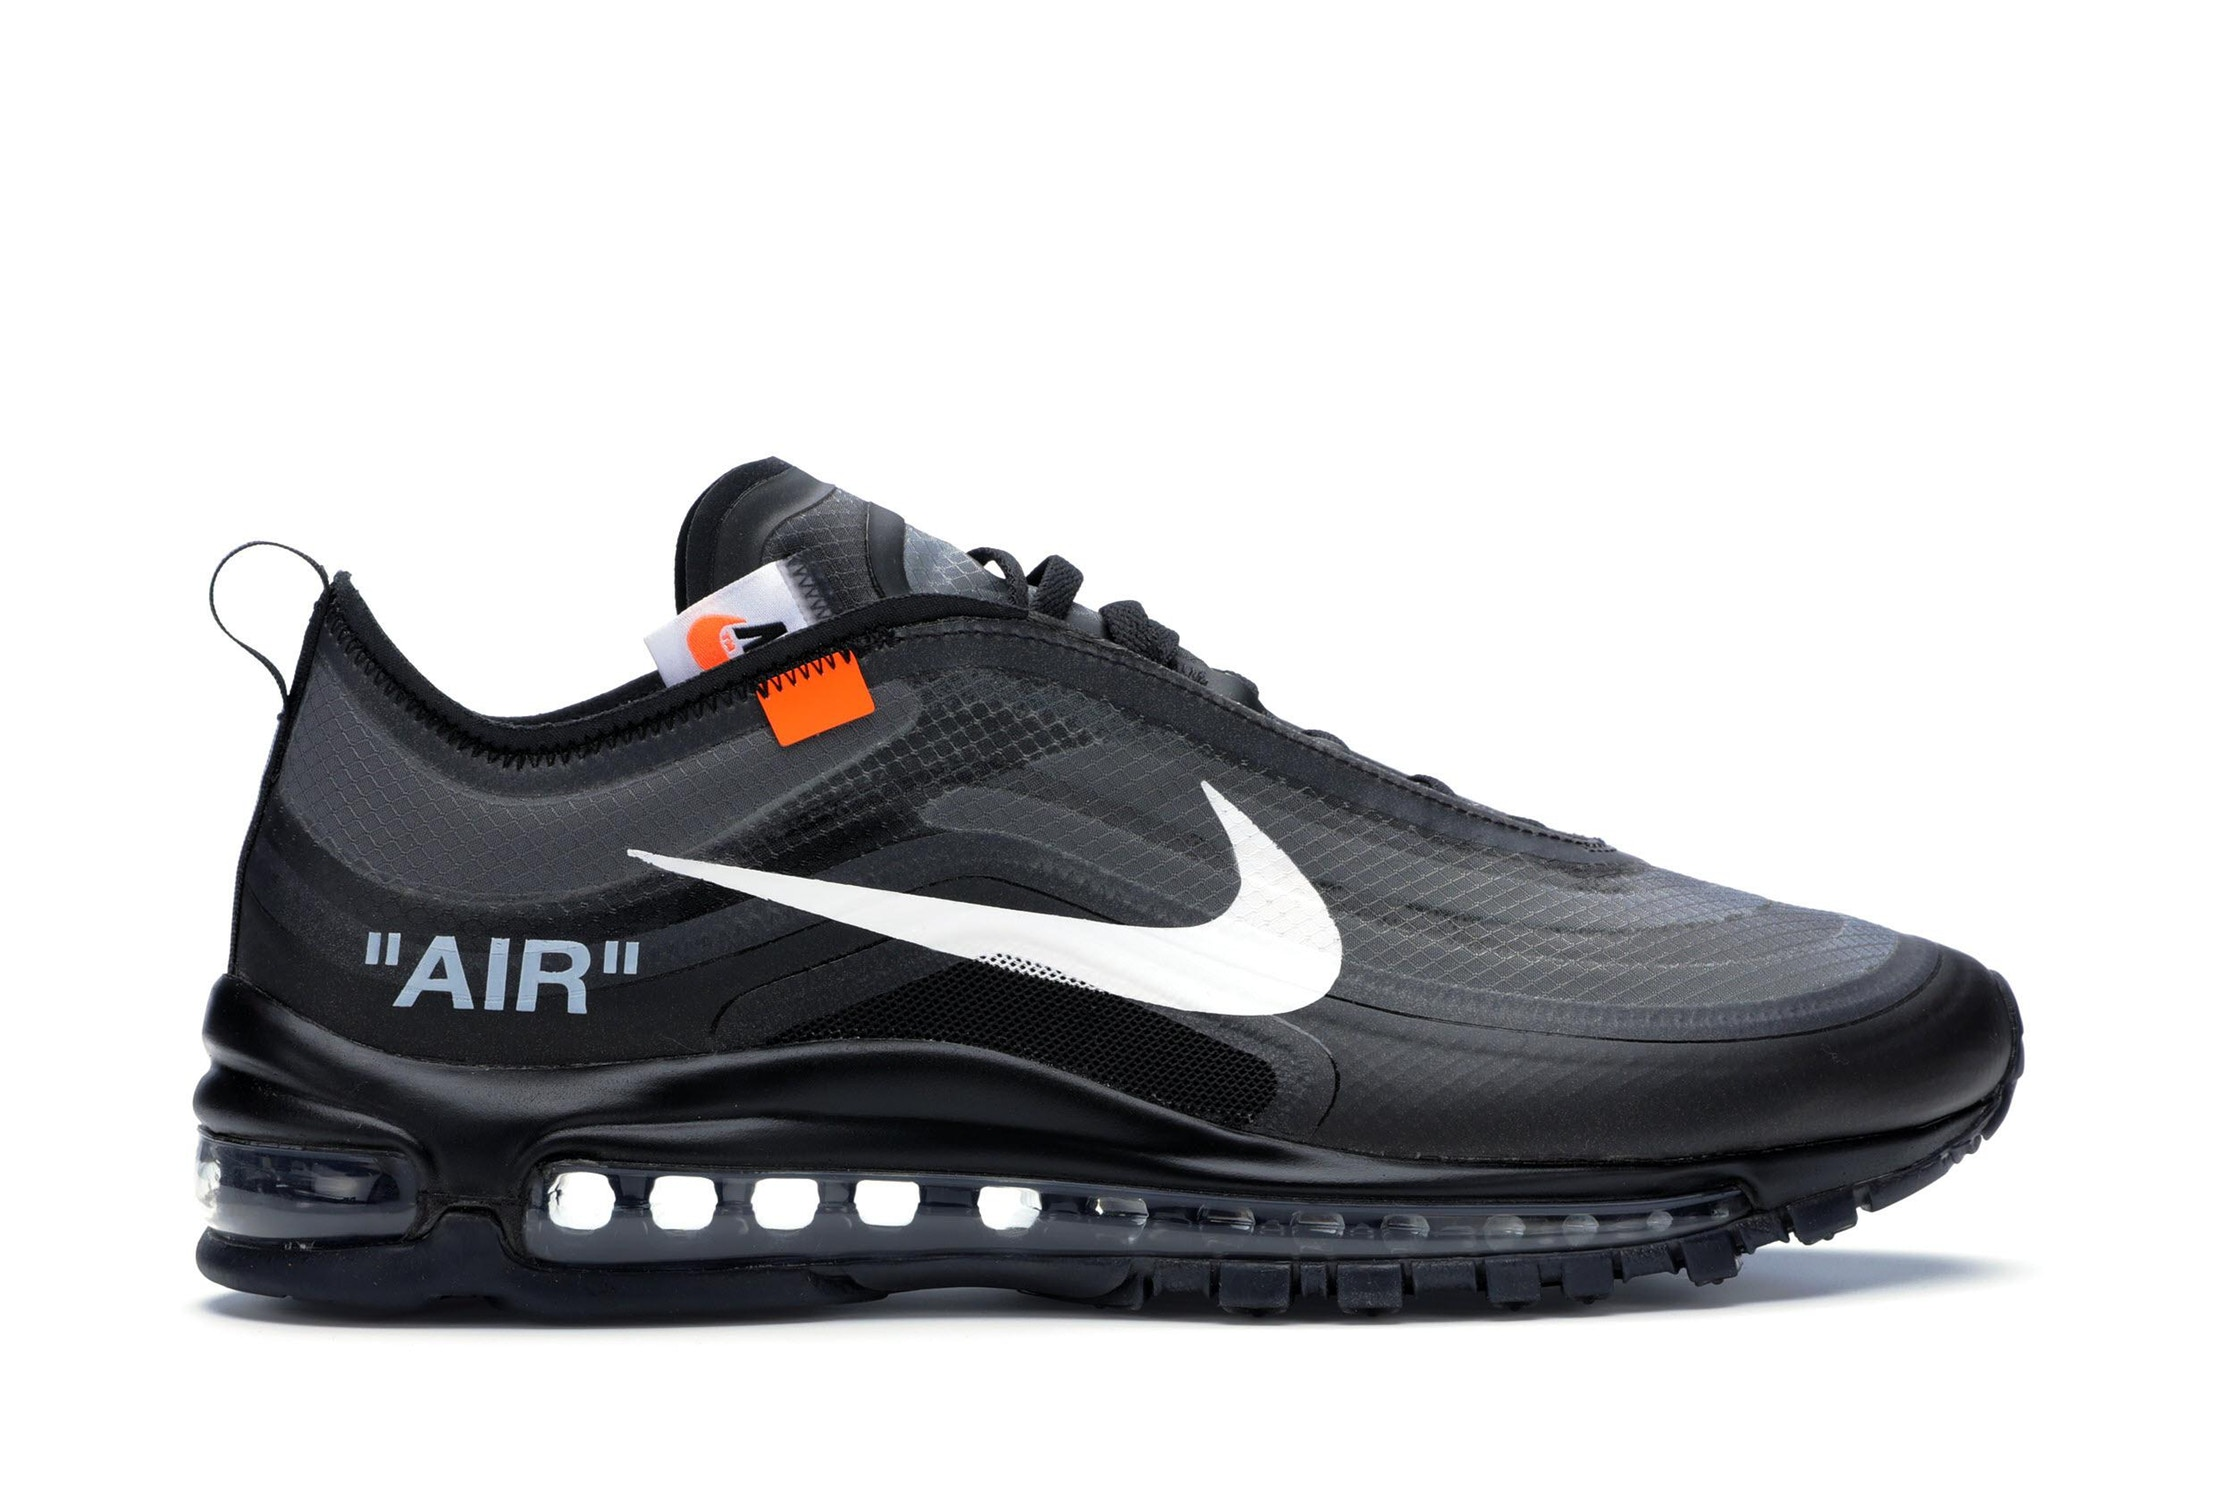 It s Official  Off-White x Nike Air Max 97s Drop Tomorrow - Off ... 4060431e6